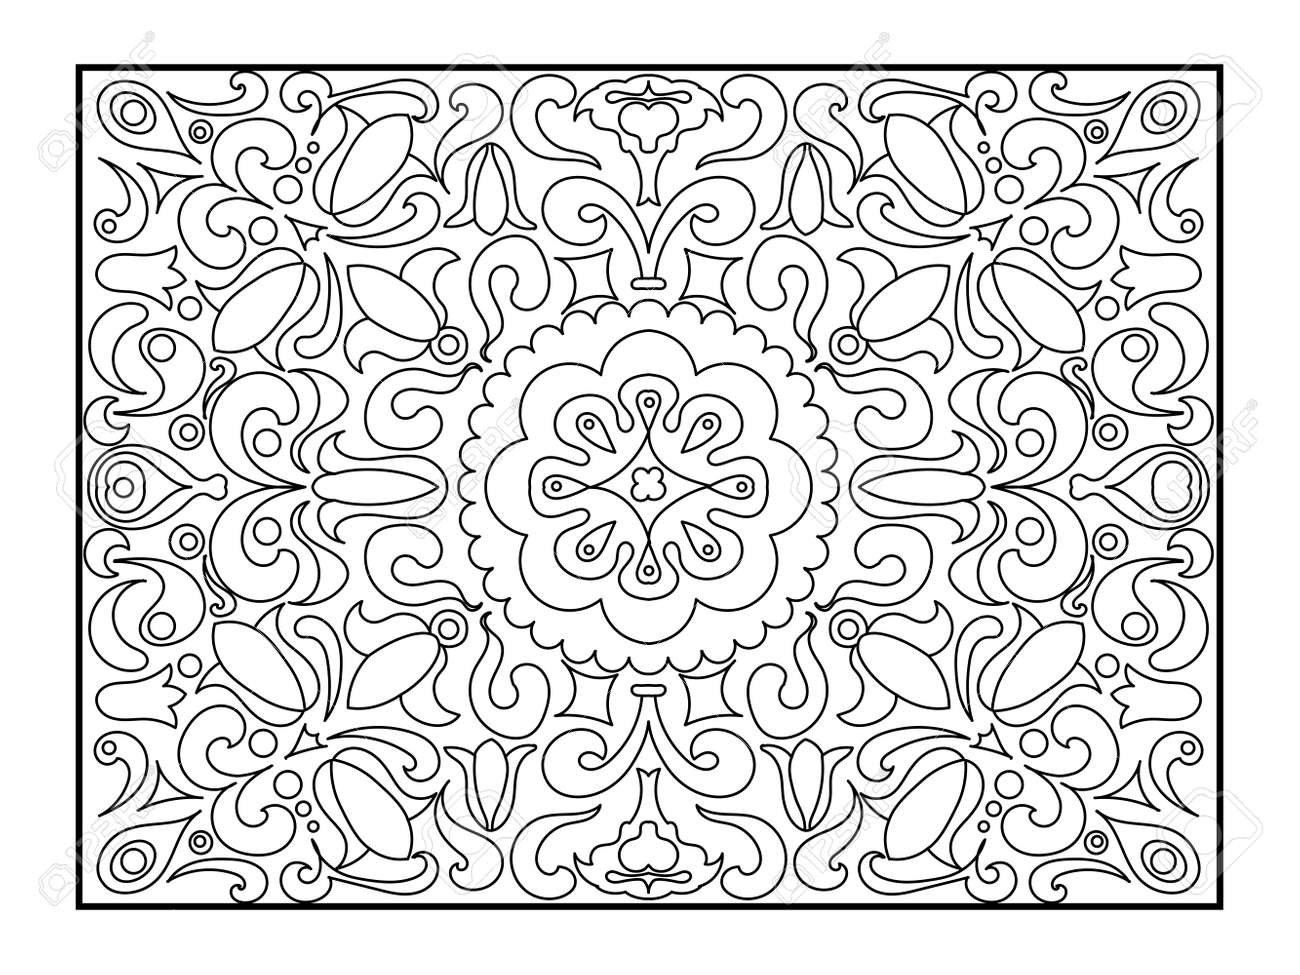 Carpet Coloring Book For Adults Illustration. Anti-stress Coloring ...